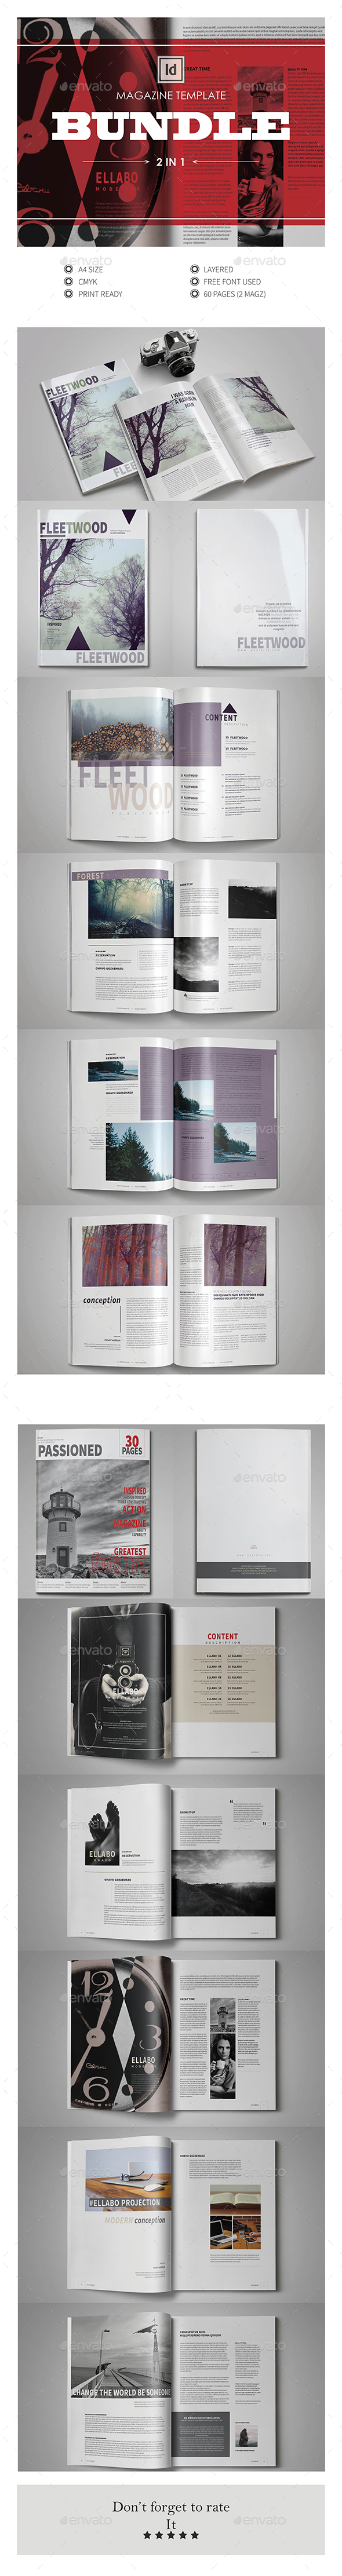 Multipurpose InDesign Magazine Template Bundle V.4 - Magazines Print Templates